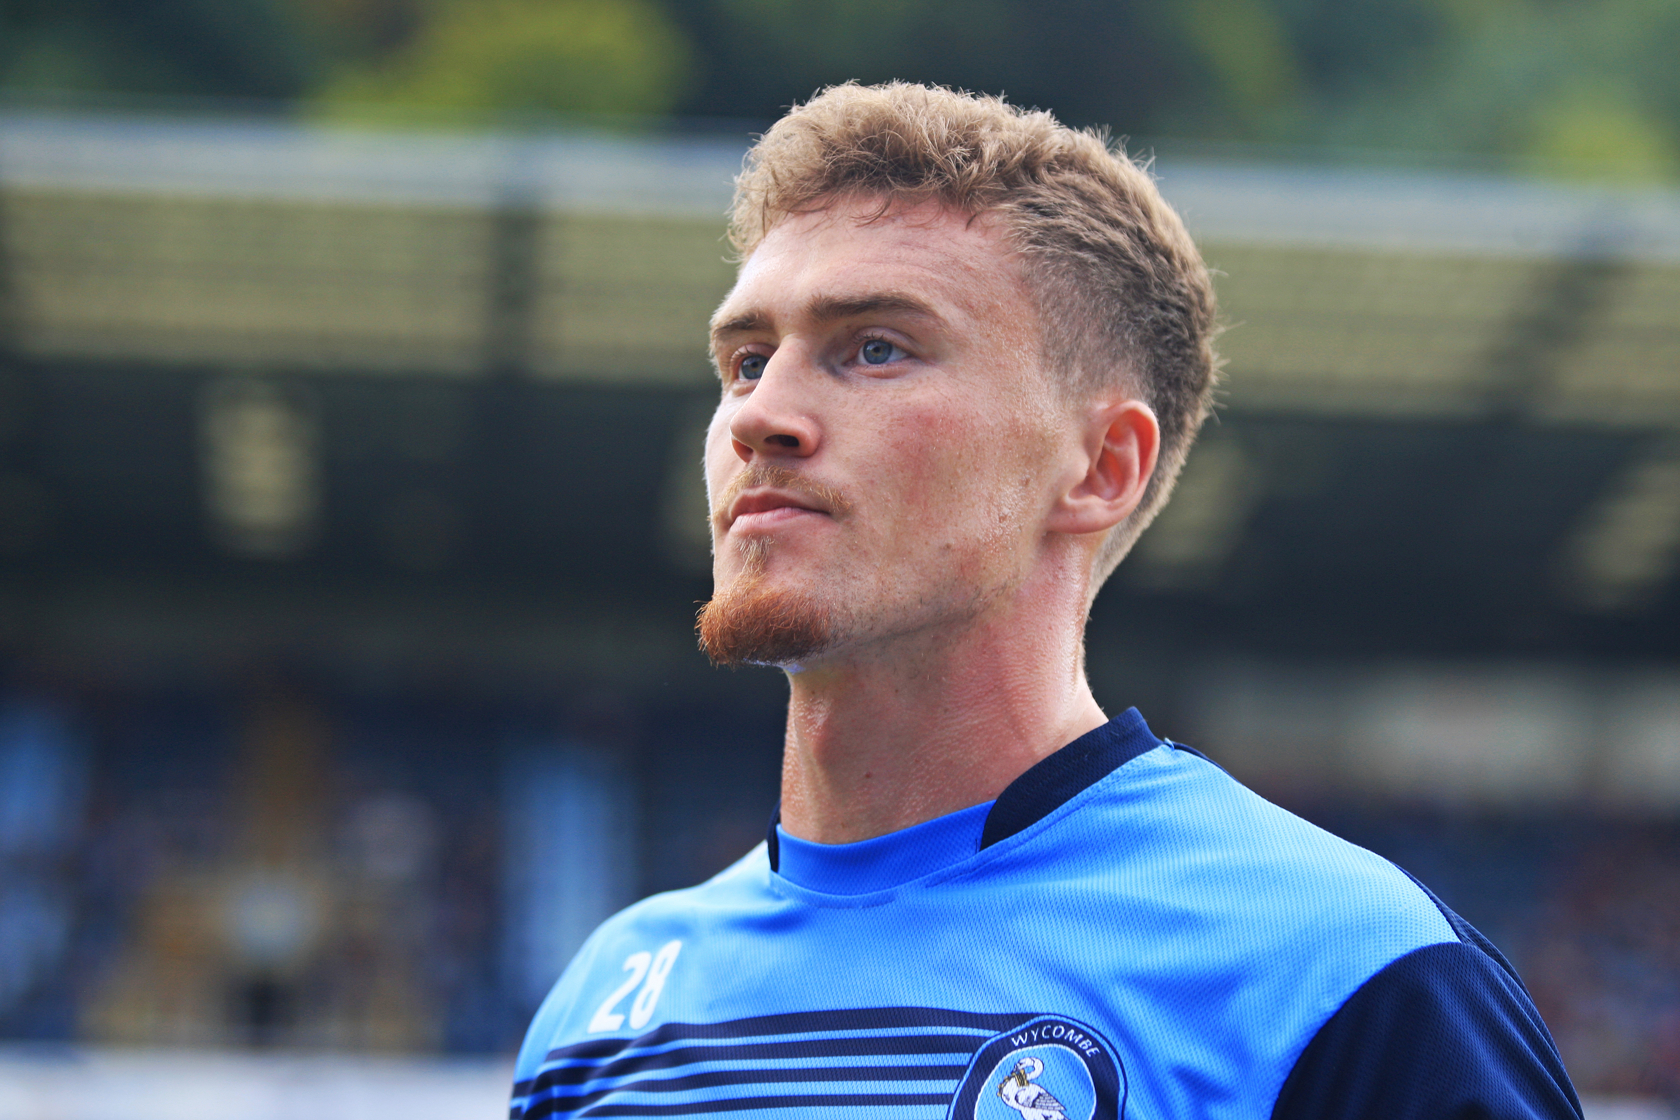 Scarr is living the dream at Wycombe Wanderers